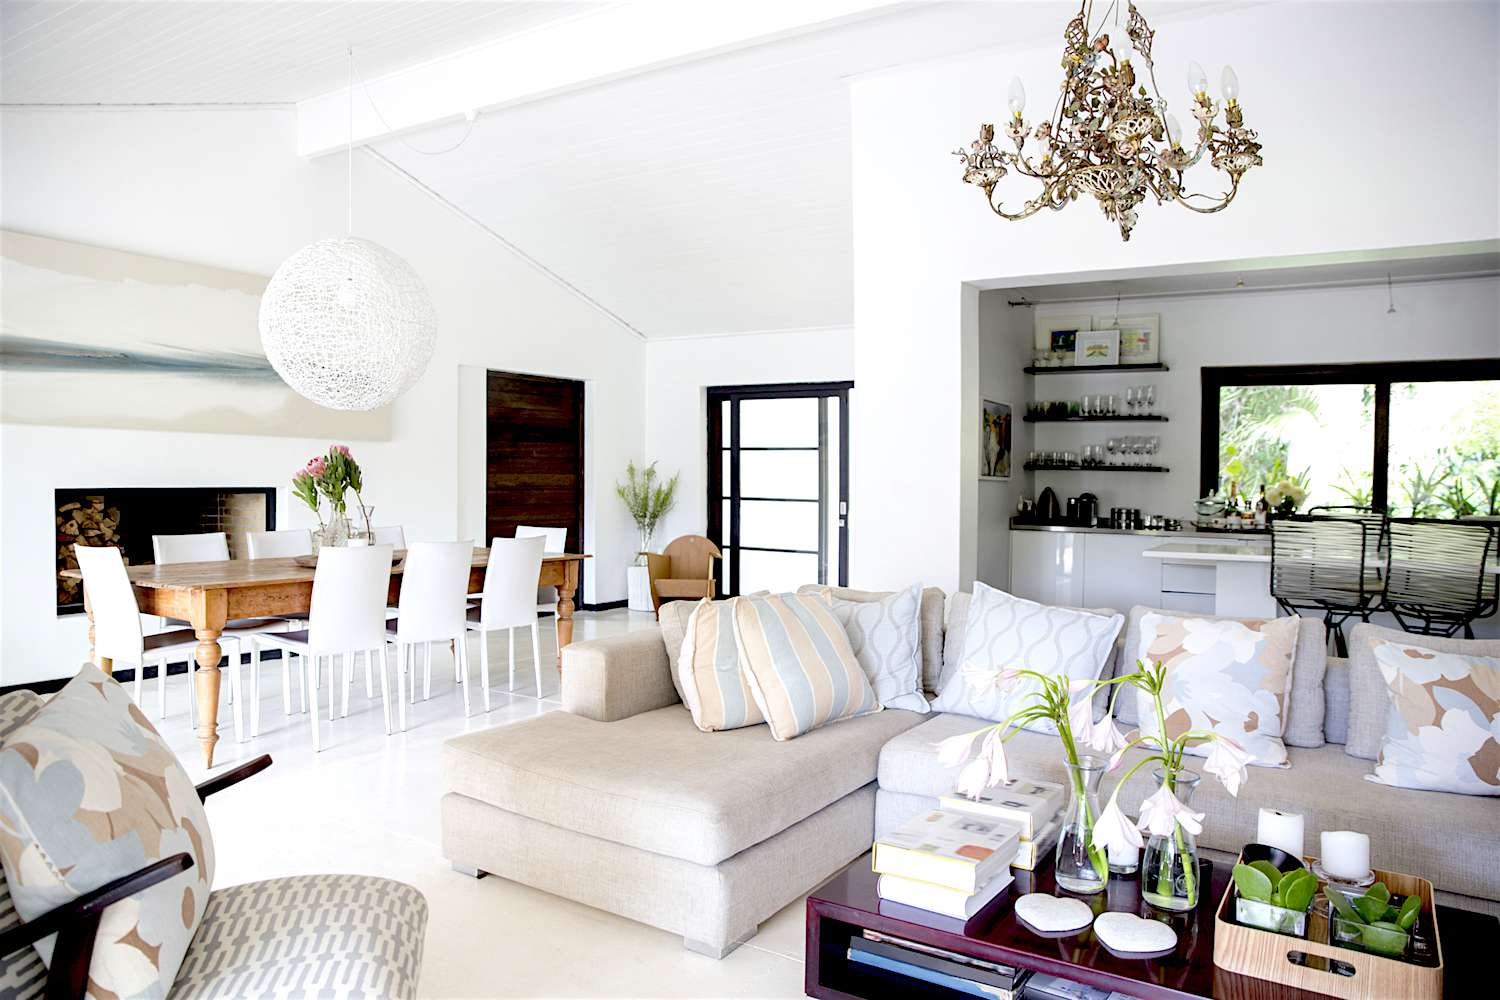 A minimally decorated pale interior